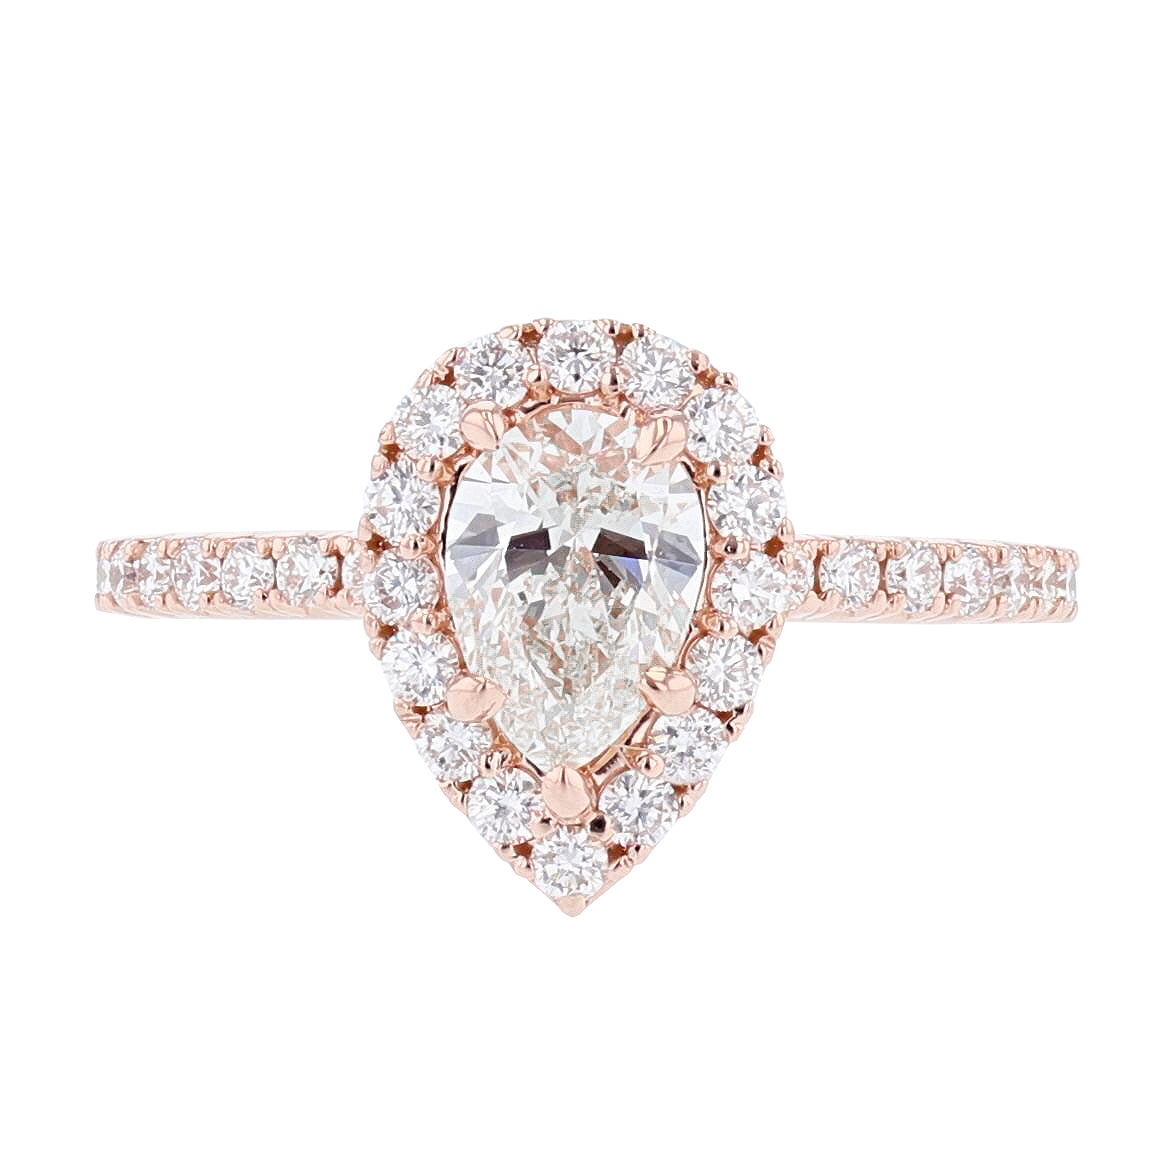 18K Rose Gold Pear Shape Diamond Engagement Ring - Nazarelle